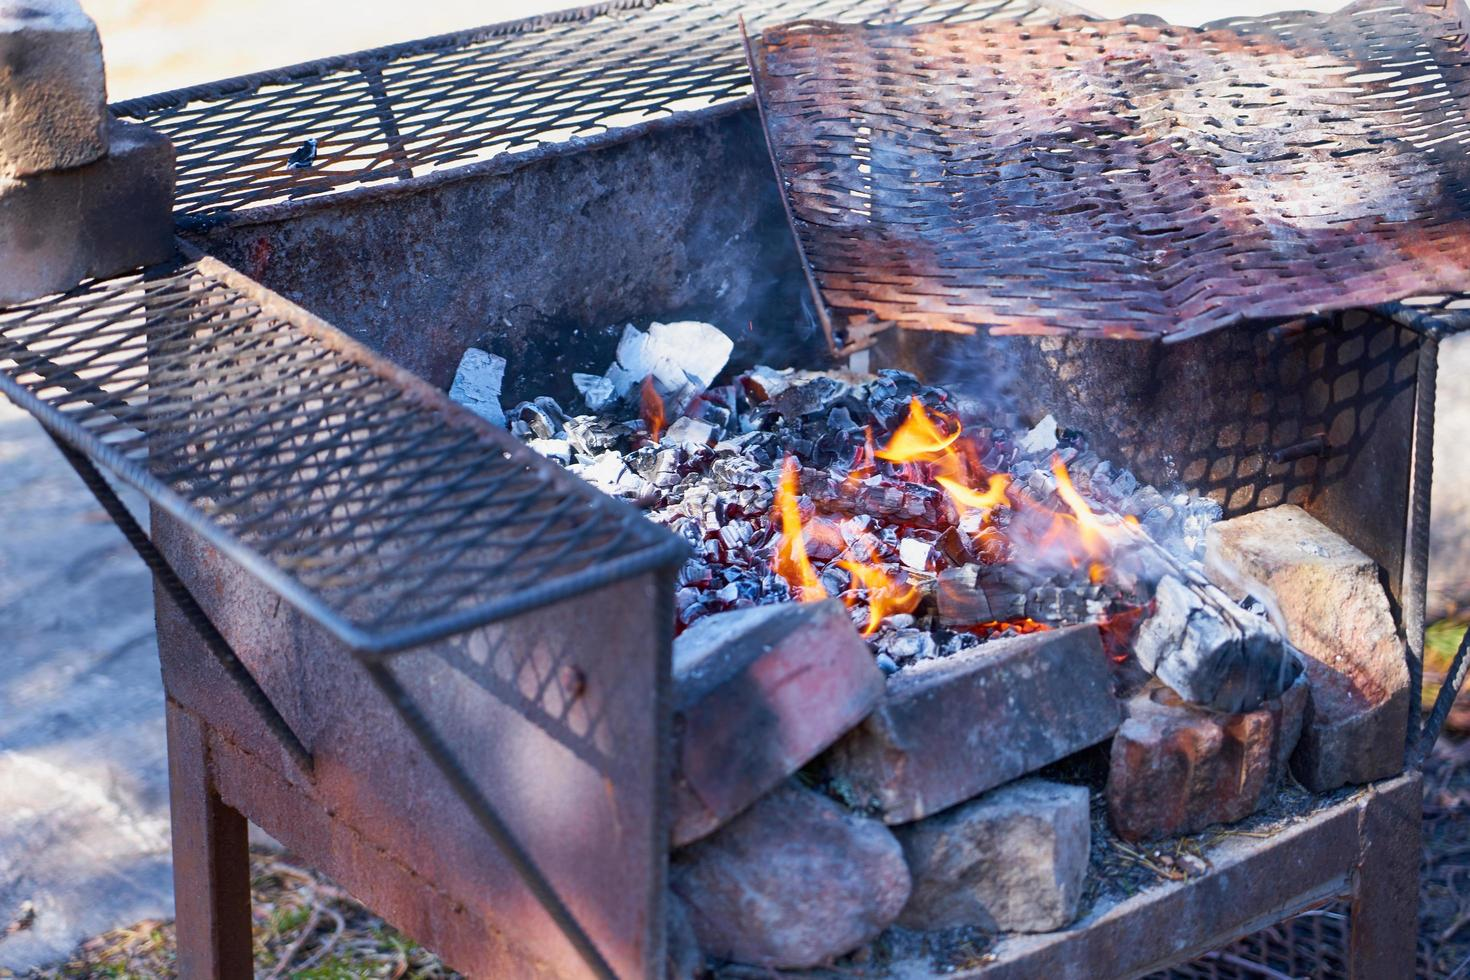 Fire in a rusty vintage grill outdoor with blurred background photo